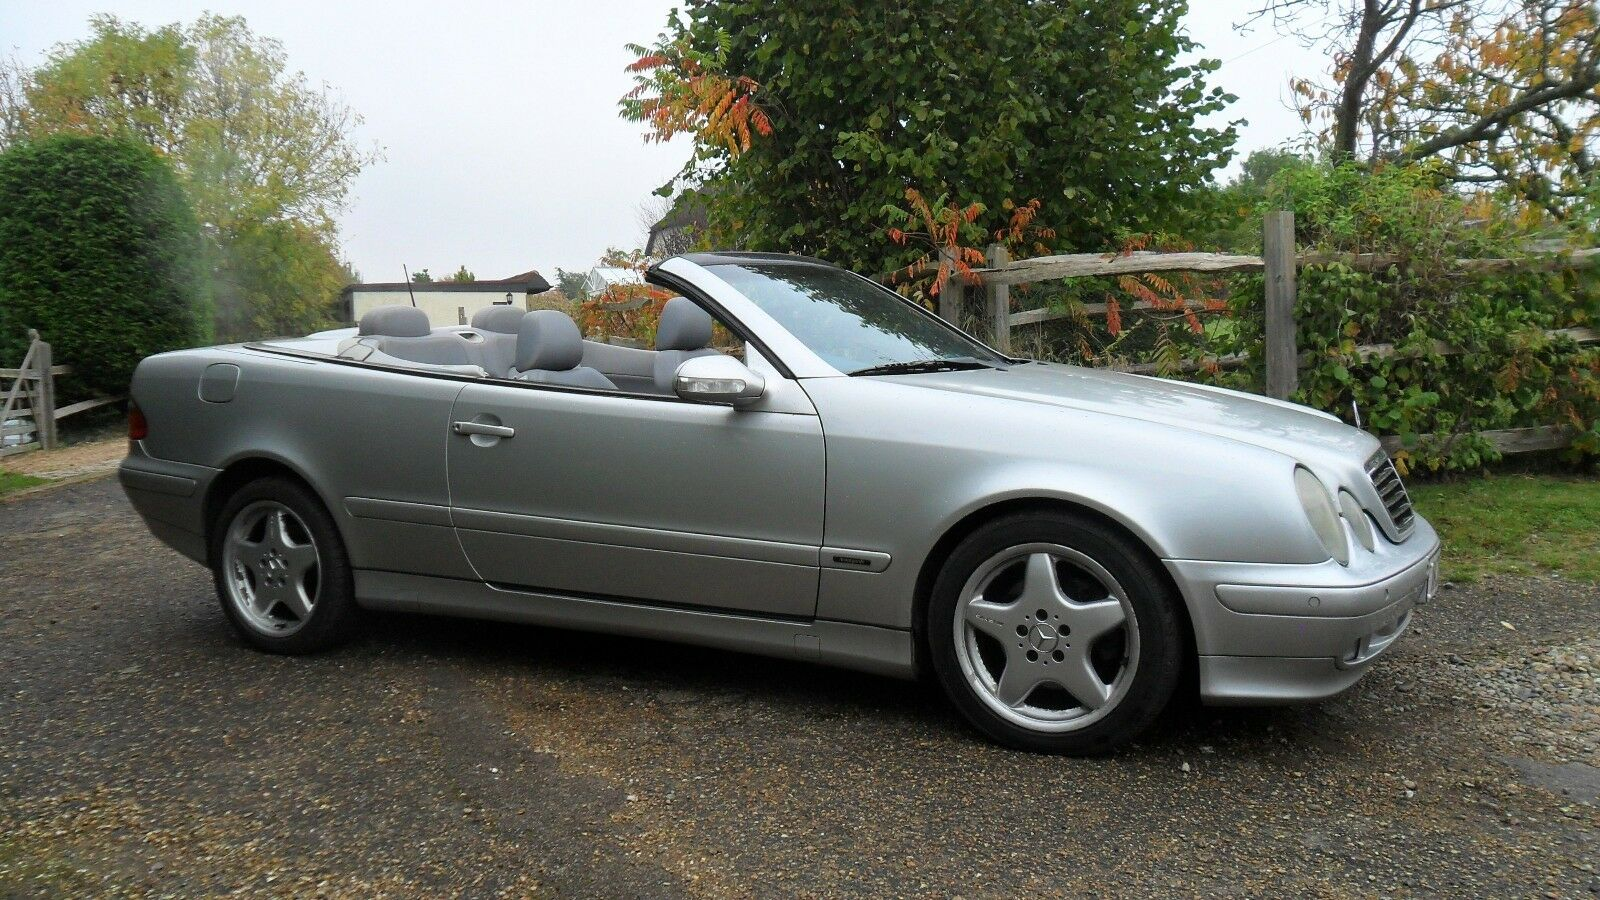 Mercedes 320 2002 Clk Convertible With Full Service